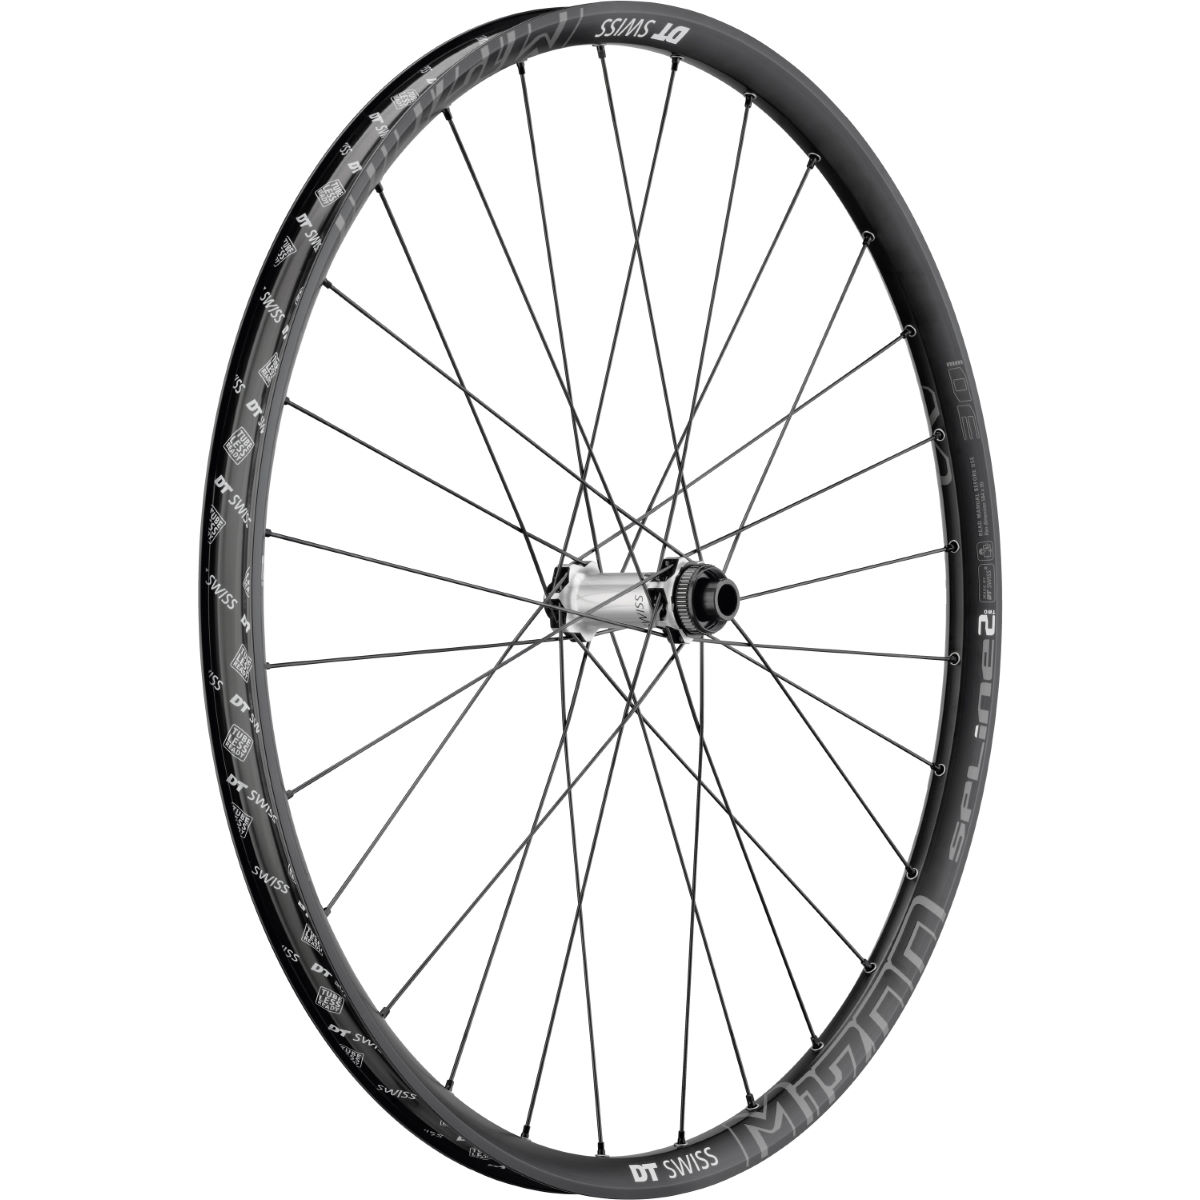 Roue avant DT Swiss M1700 Spline Two 30 Boost - 27.5'' 15 x 110mm